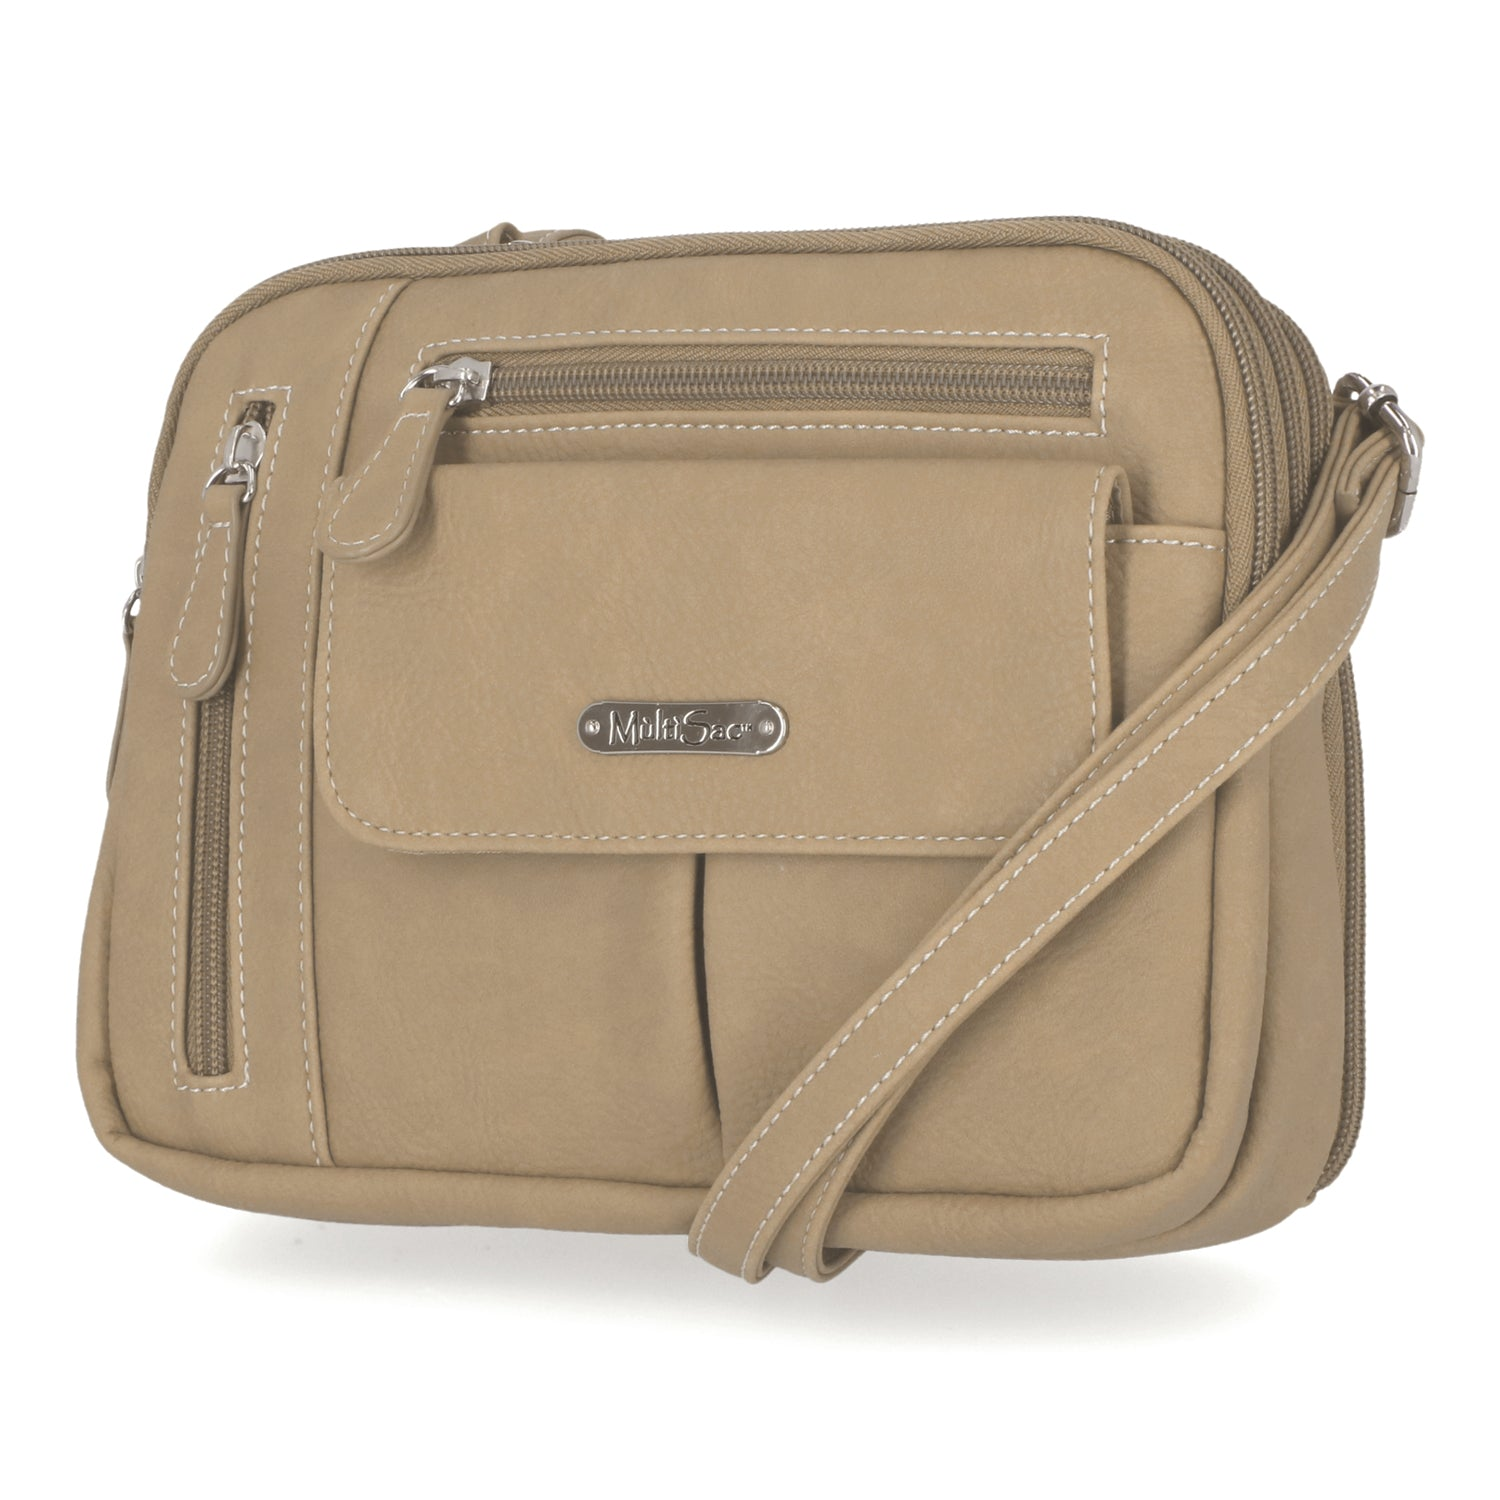 Zippy Triple Compartment Crossbody Bag (Chino)